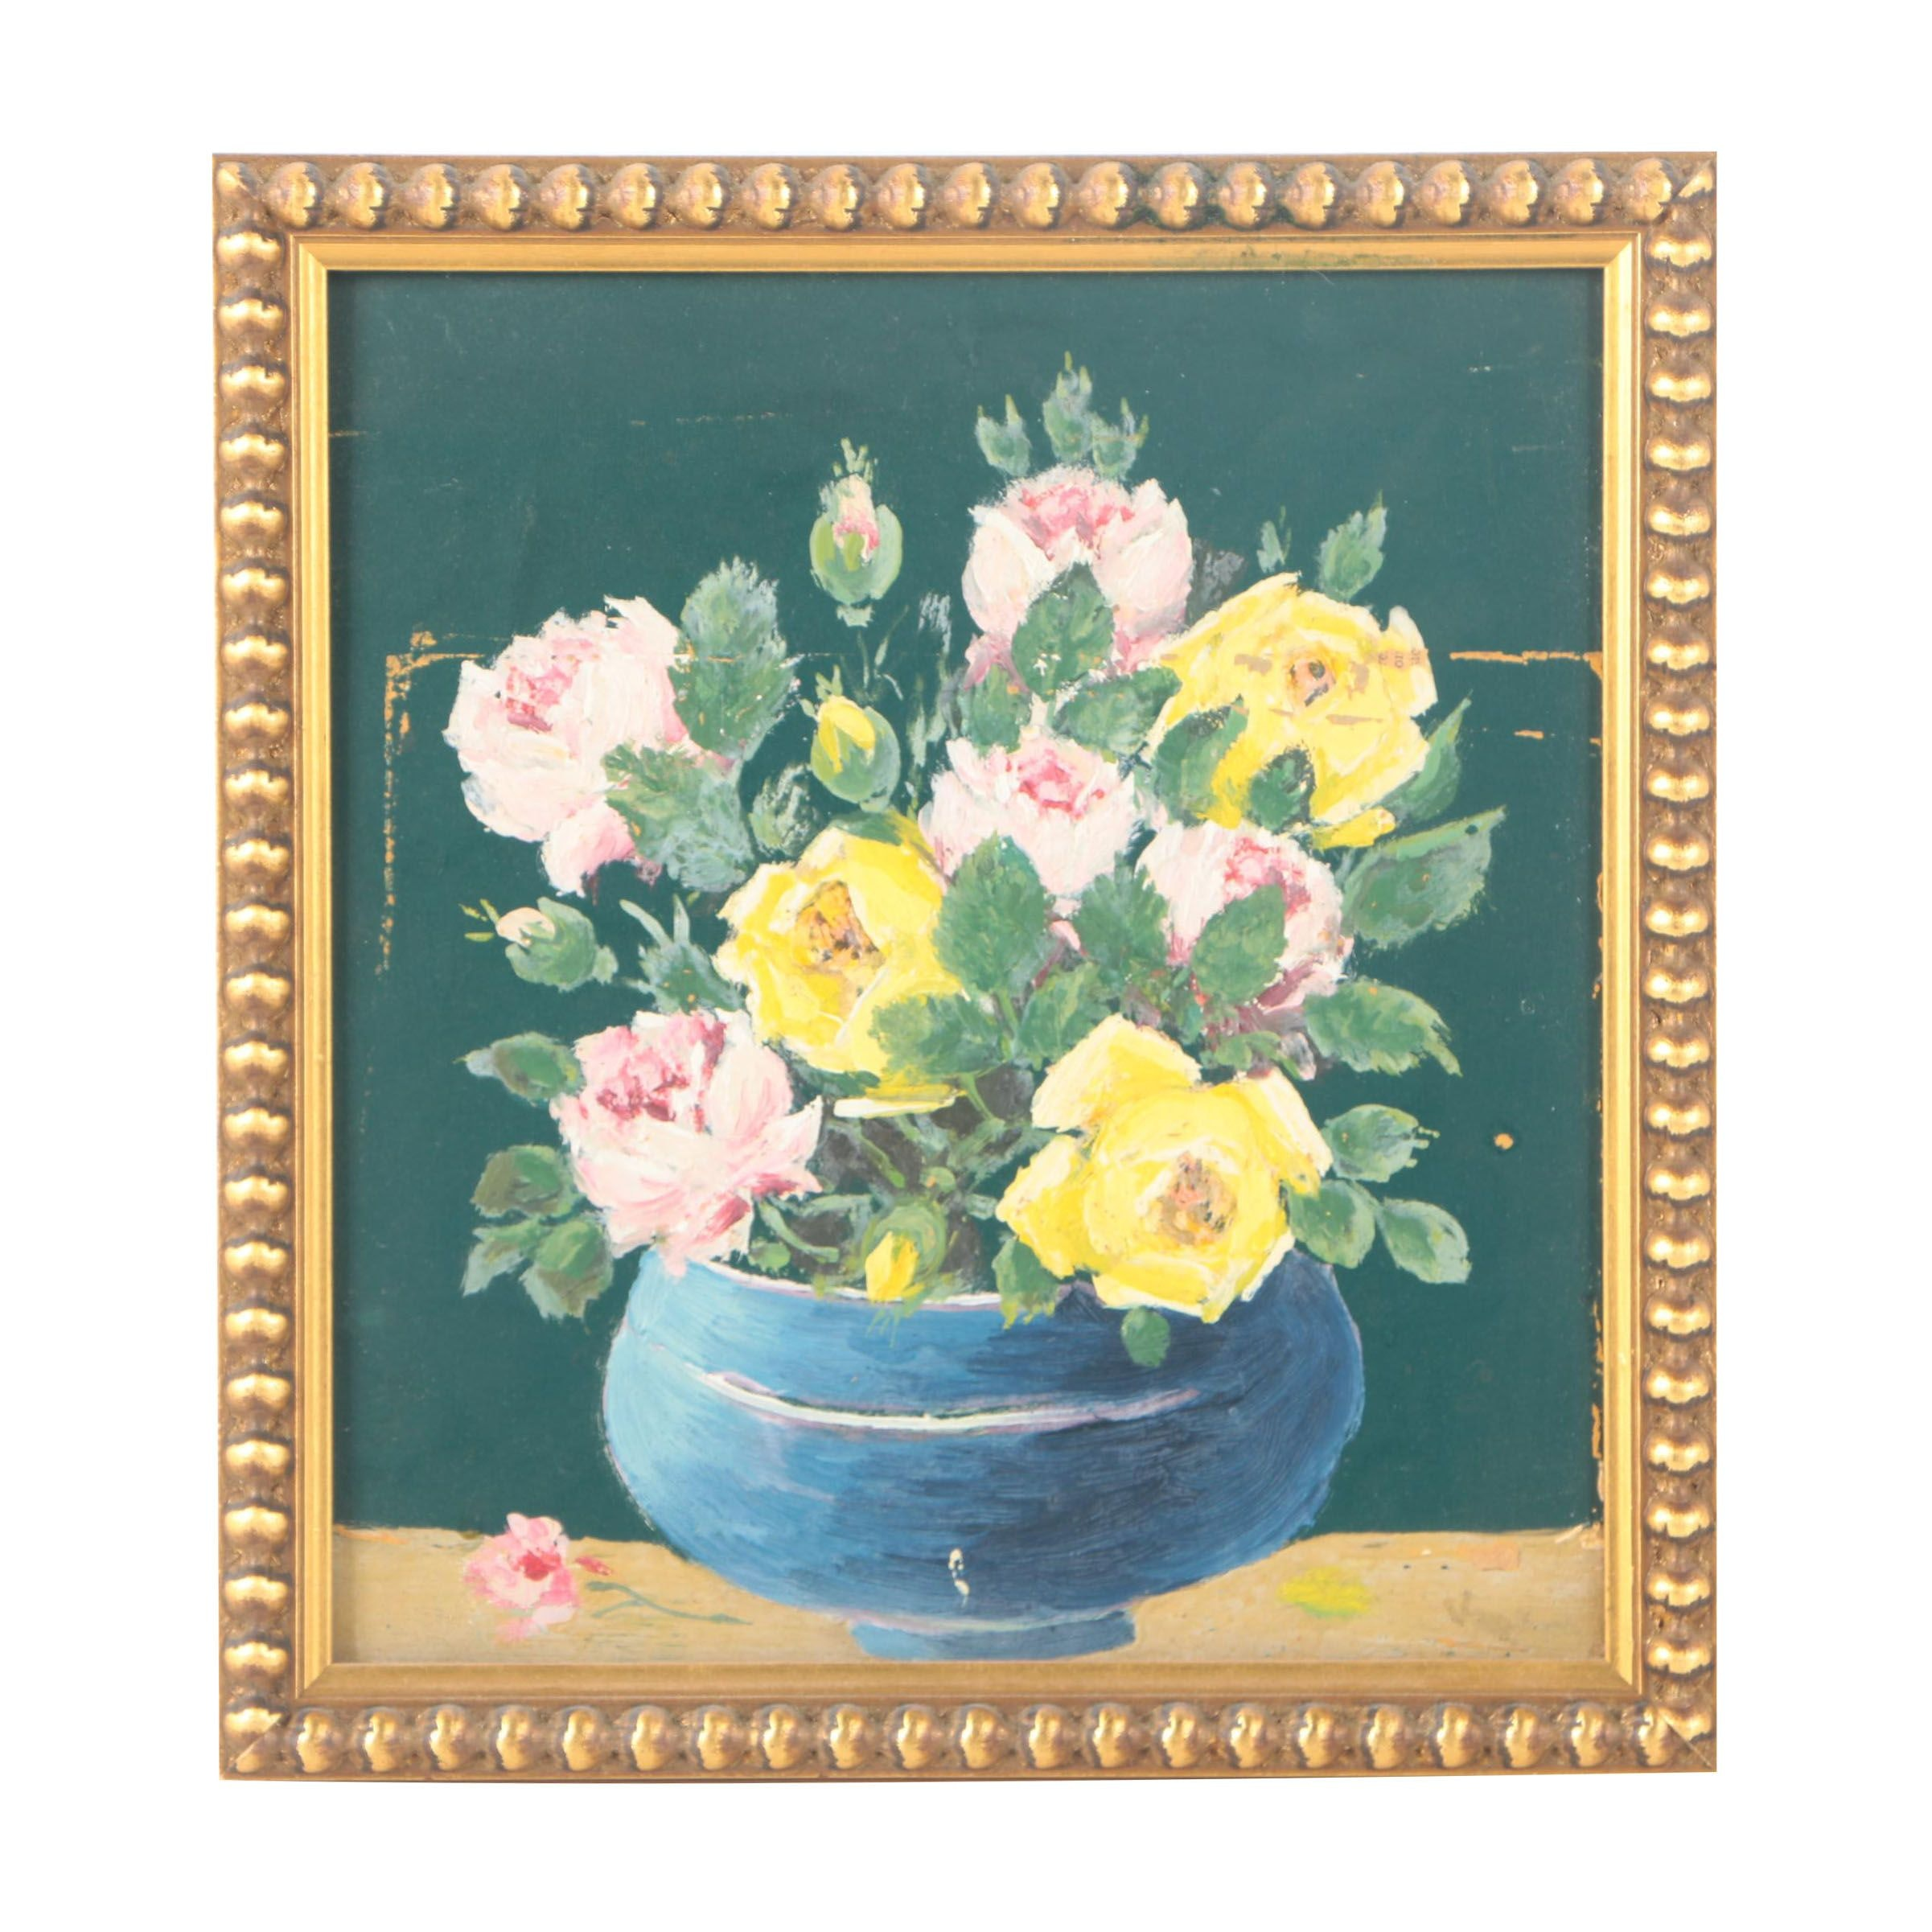 Oil Painting on Wood Panel of Floral Still Life